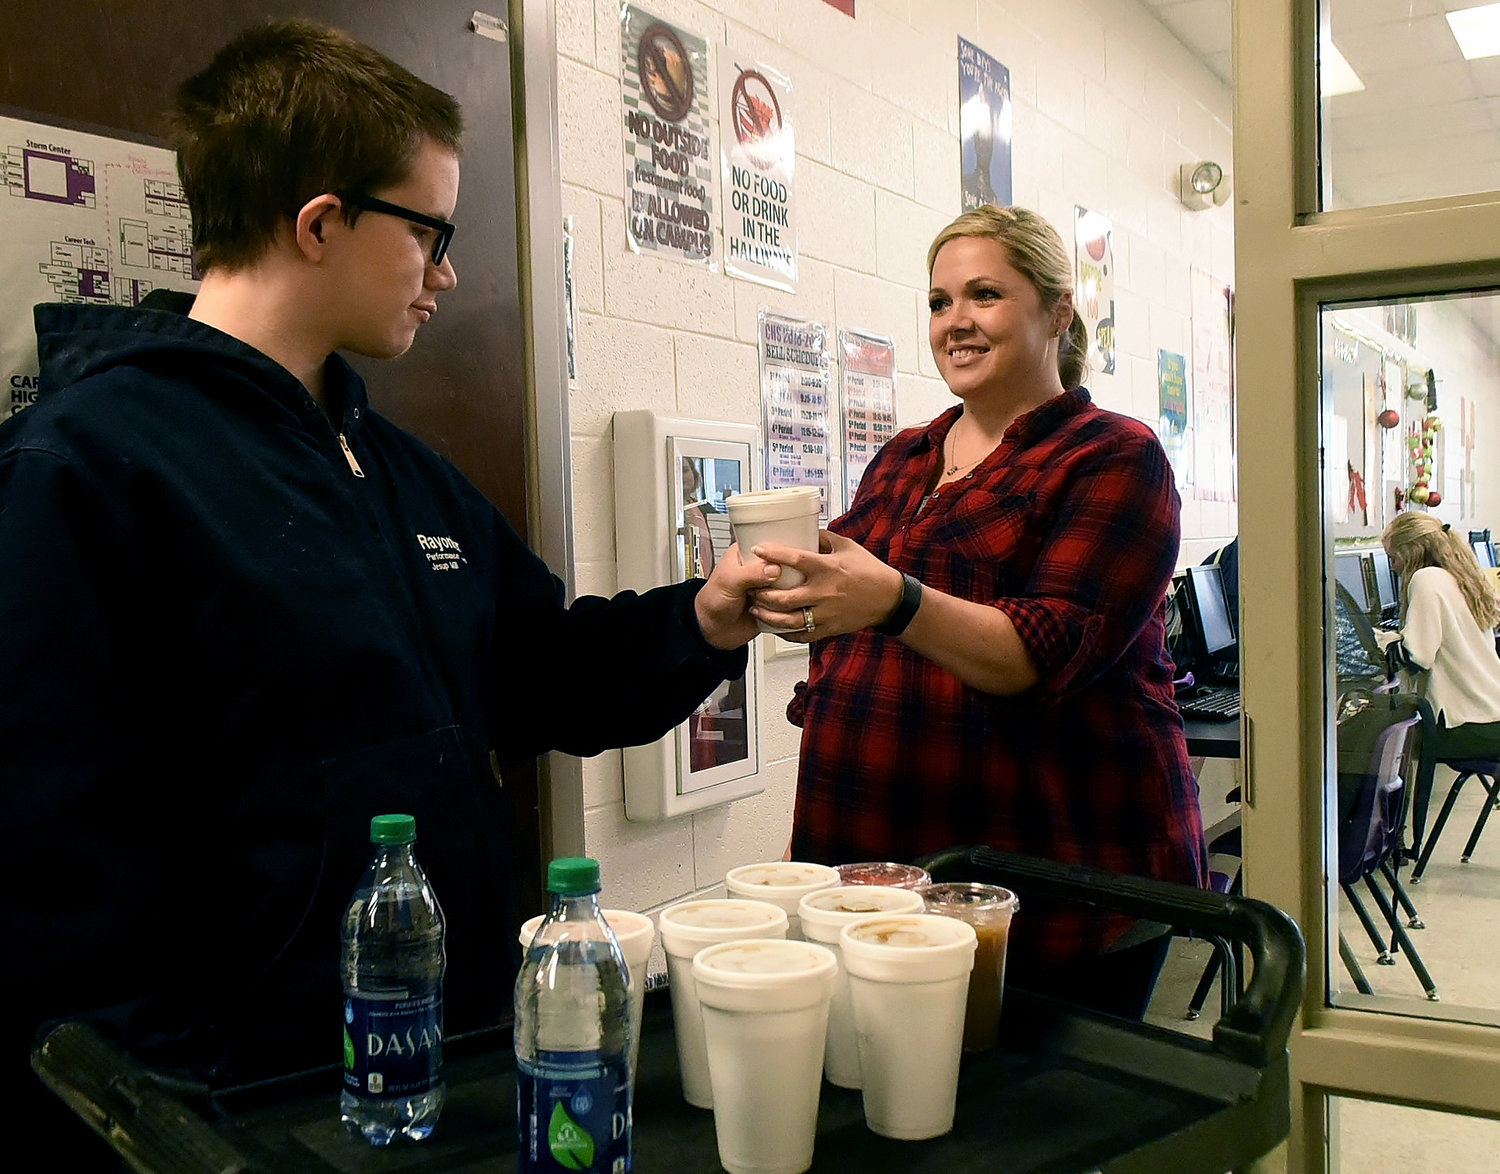 Jack Phillips, a student at Cartersville High School, delivers a cup of coffee to marketing teacher Camille Spradley at her classroom Thursday morning as part of the Canes Cups program.